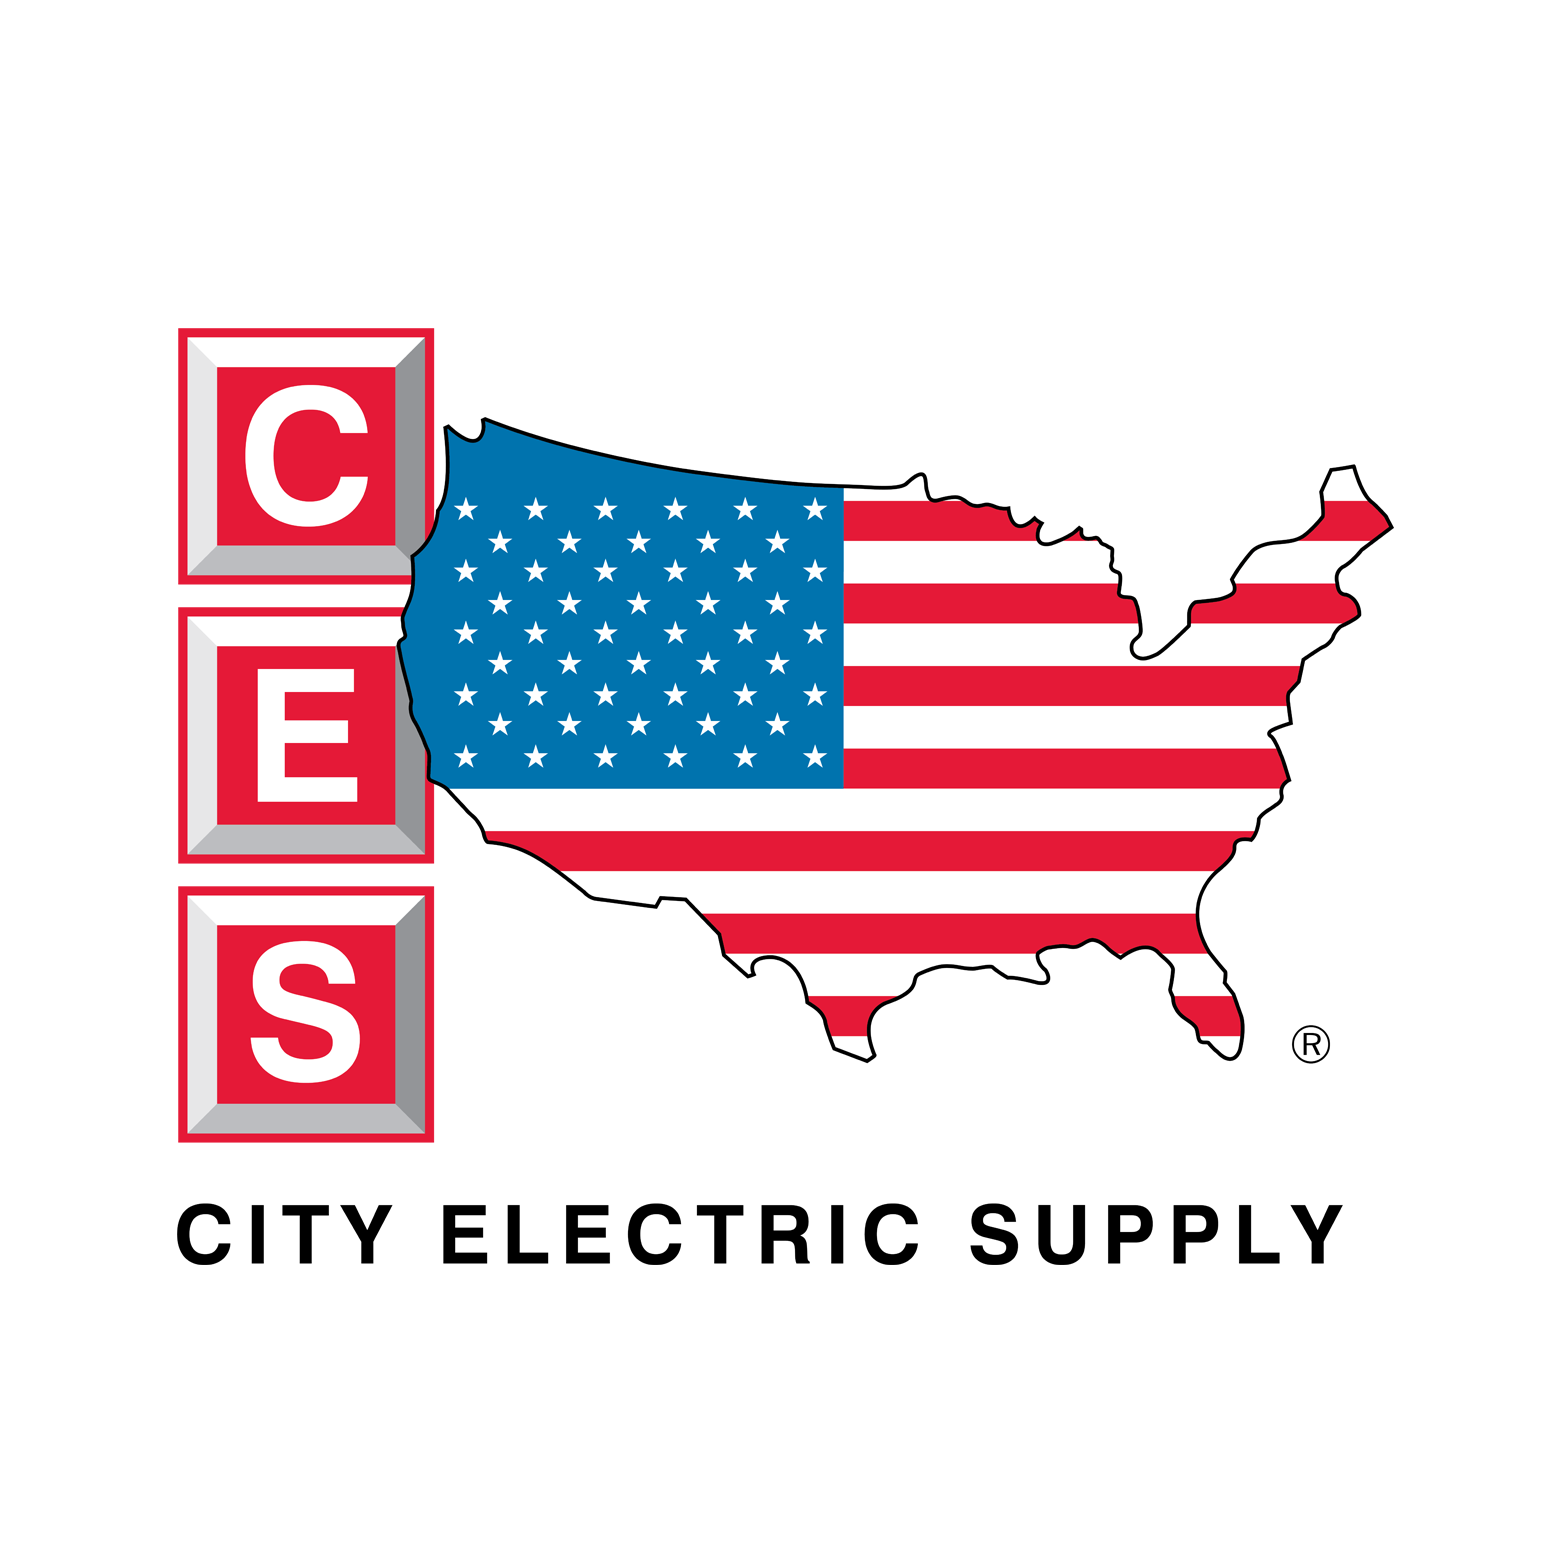 City Electric Supply Peoria